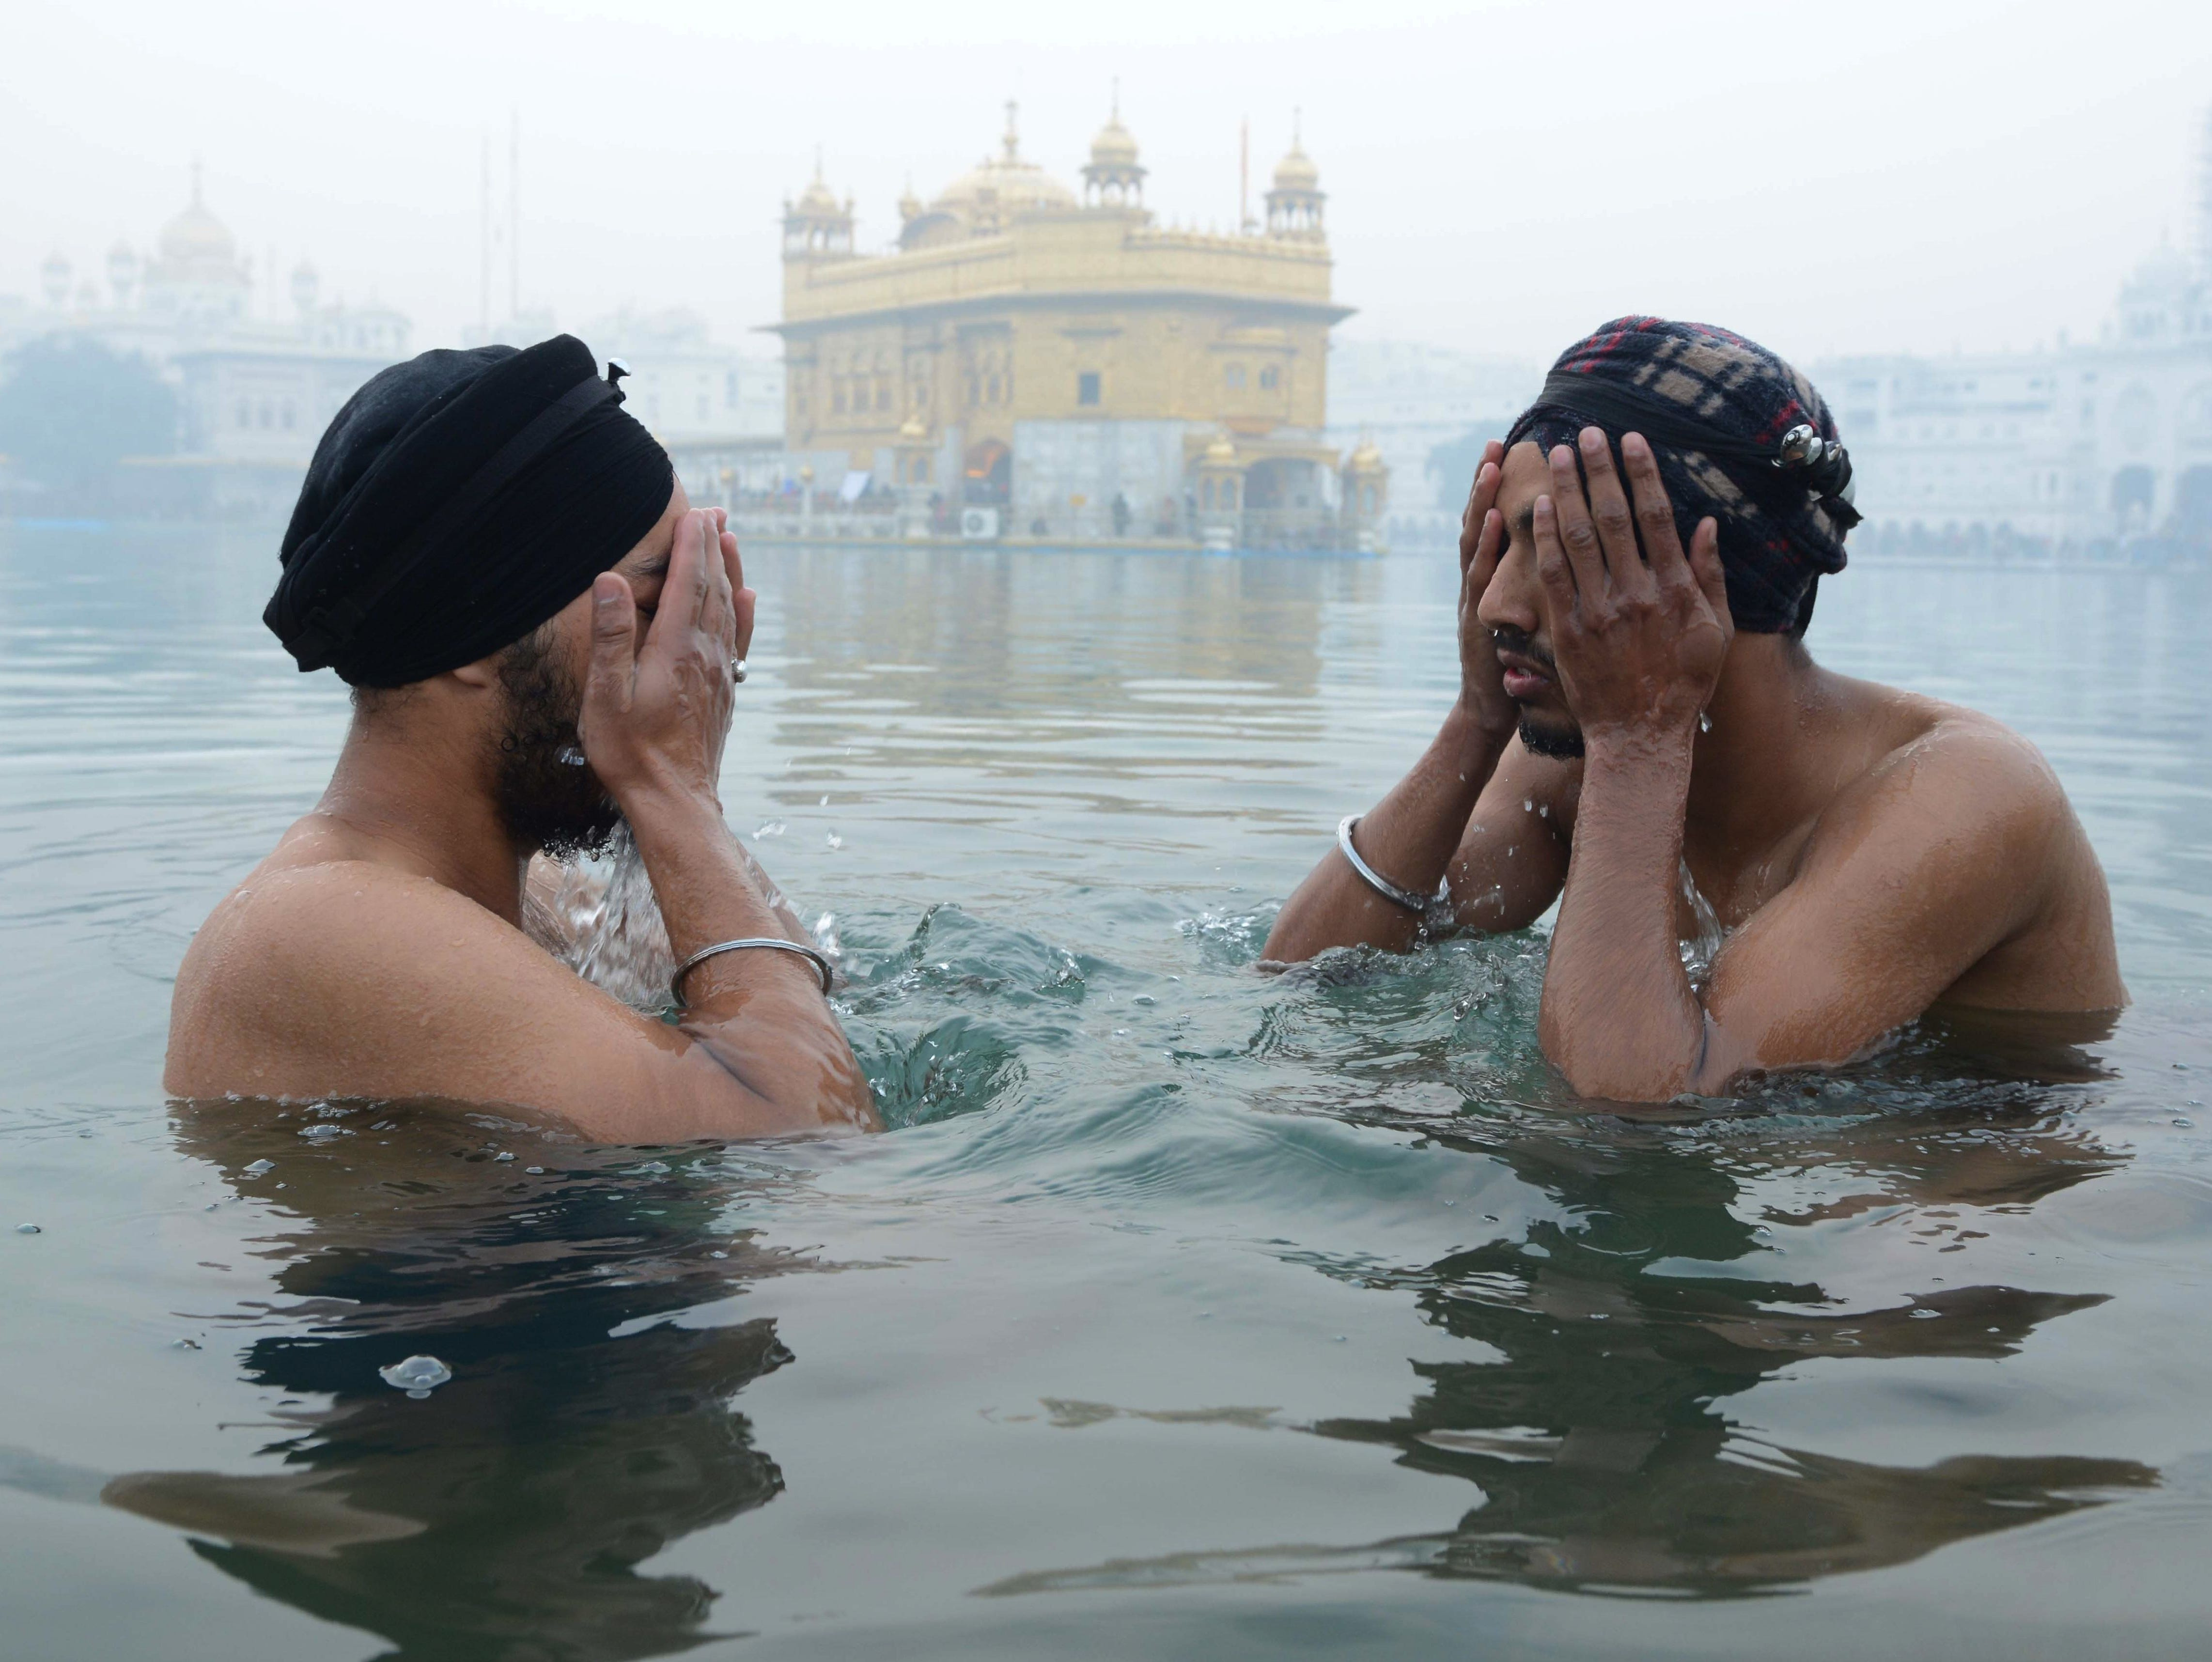 Indian Sikh devotees take a dip in the holy sarovar (water tank) in the early morning on New Year at the Sikh shrine Golden Temple in Amritsar on Jan. 1, 2019.